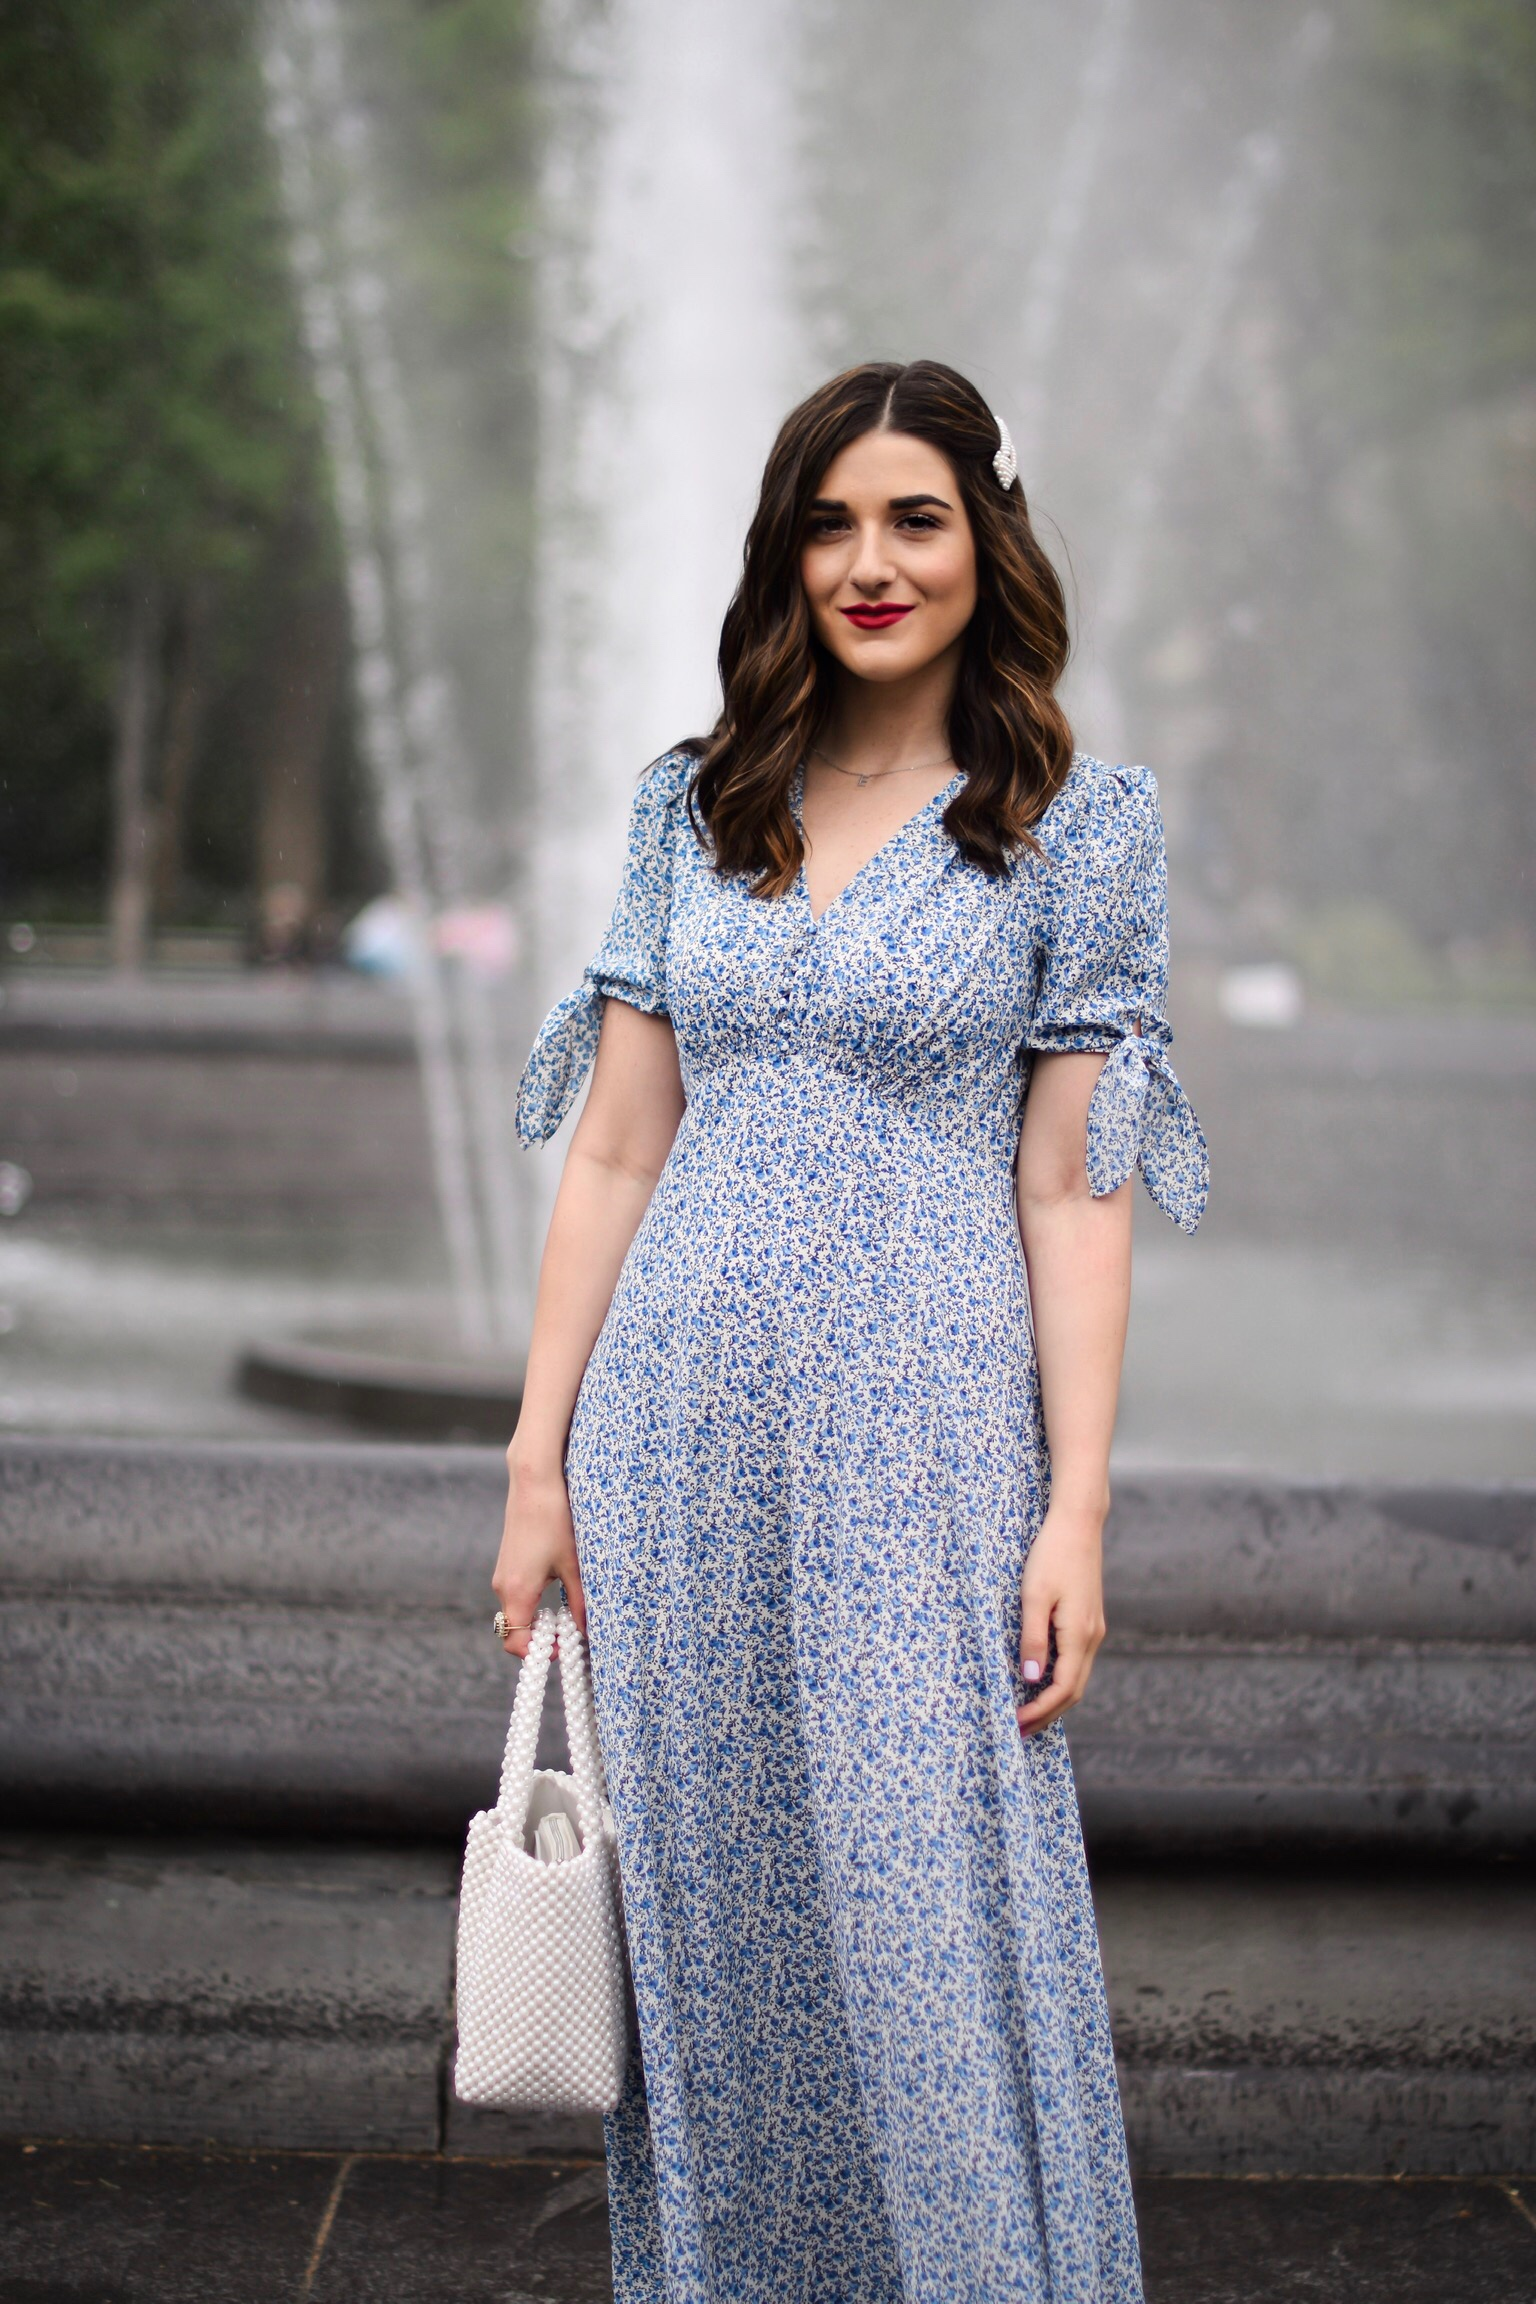 My Favorite Morning Rituals Esther Santer Fashion Blog NYC Street Style Blogger Outfit OOTD Trendy Shopping Girl What How To Wear Stitch Fix Gal Meets Glam Blue Floral Maxi Dress Hair Accesories Pearl Clip Hairsyle White Shoes Sandals Vince Camuto Bag.JPG